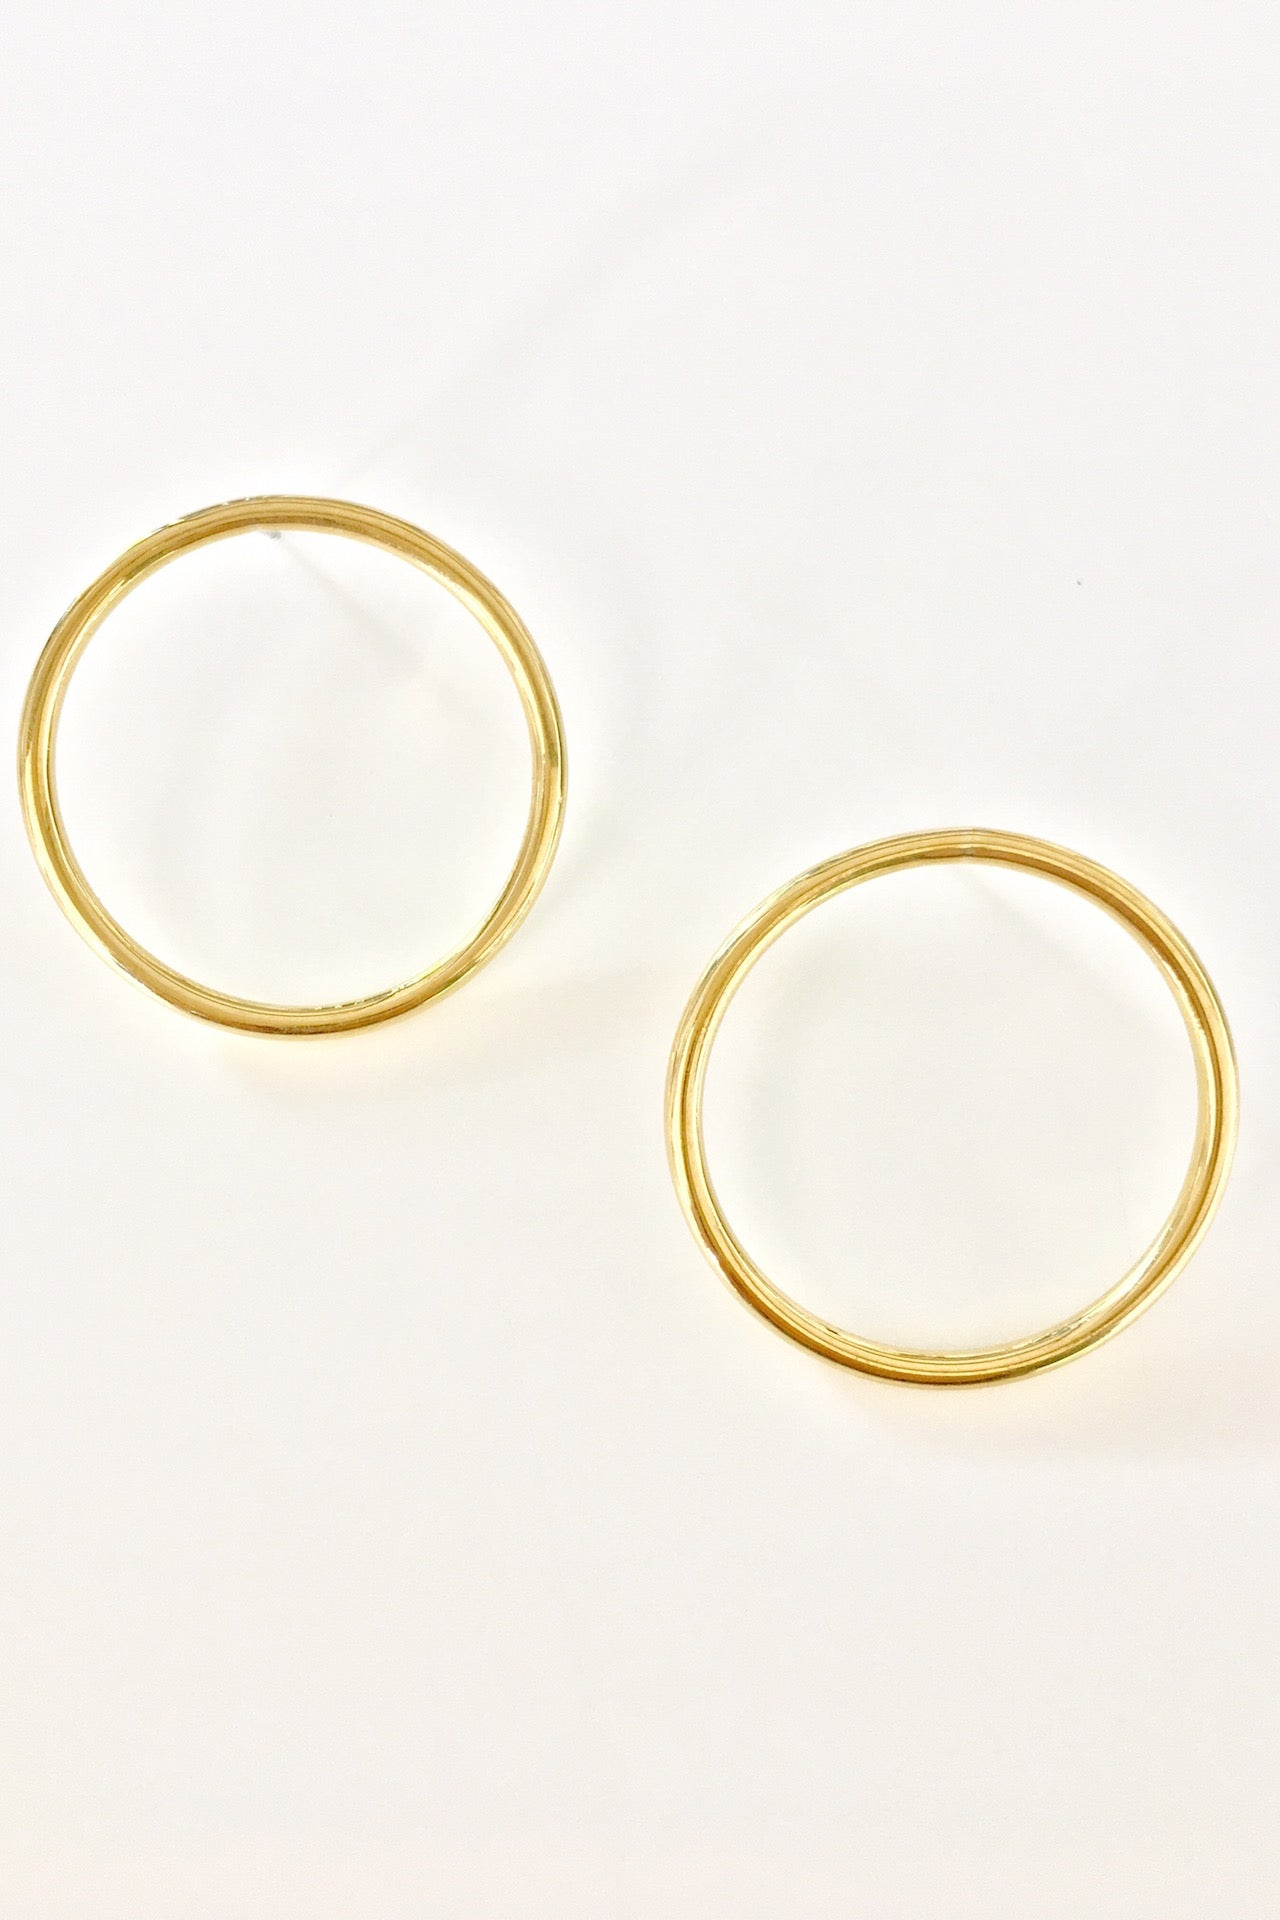 Duara Circle Stud Earring